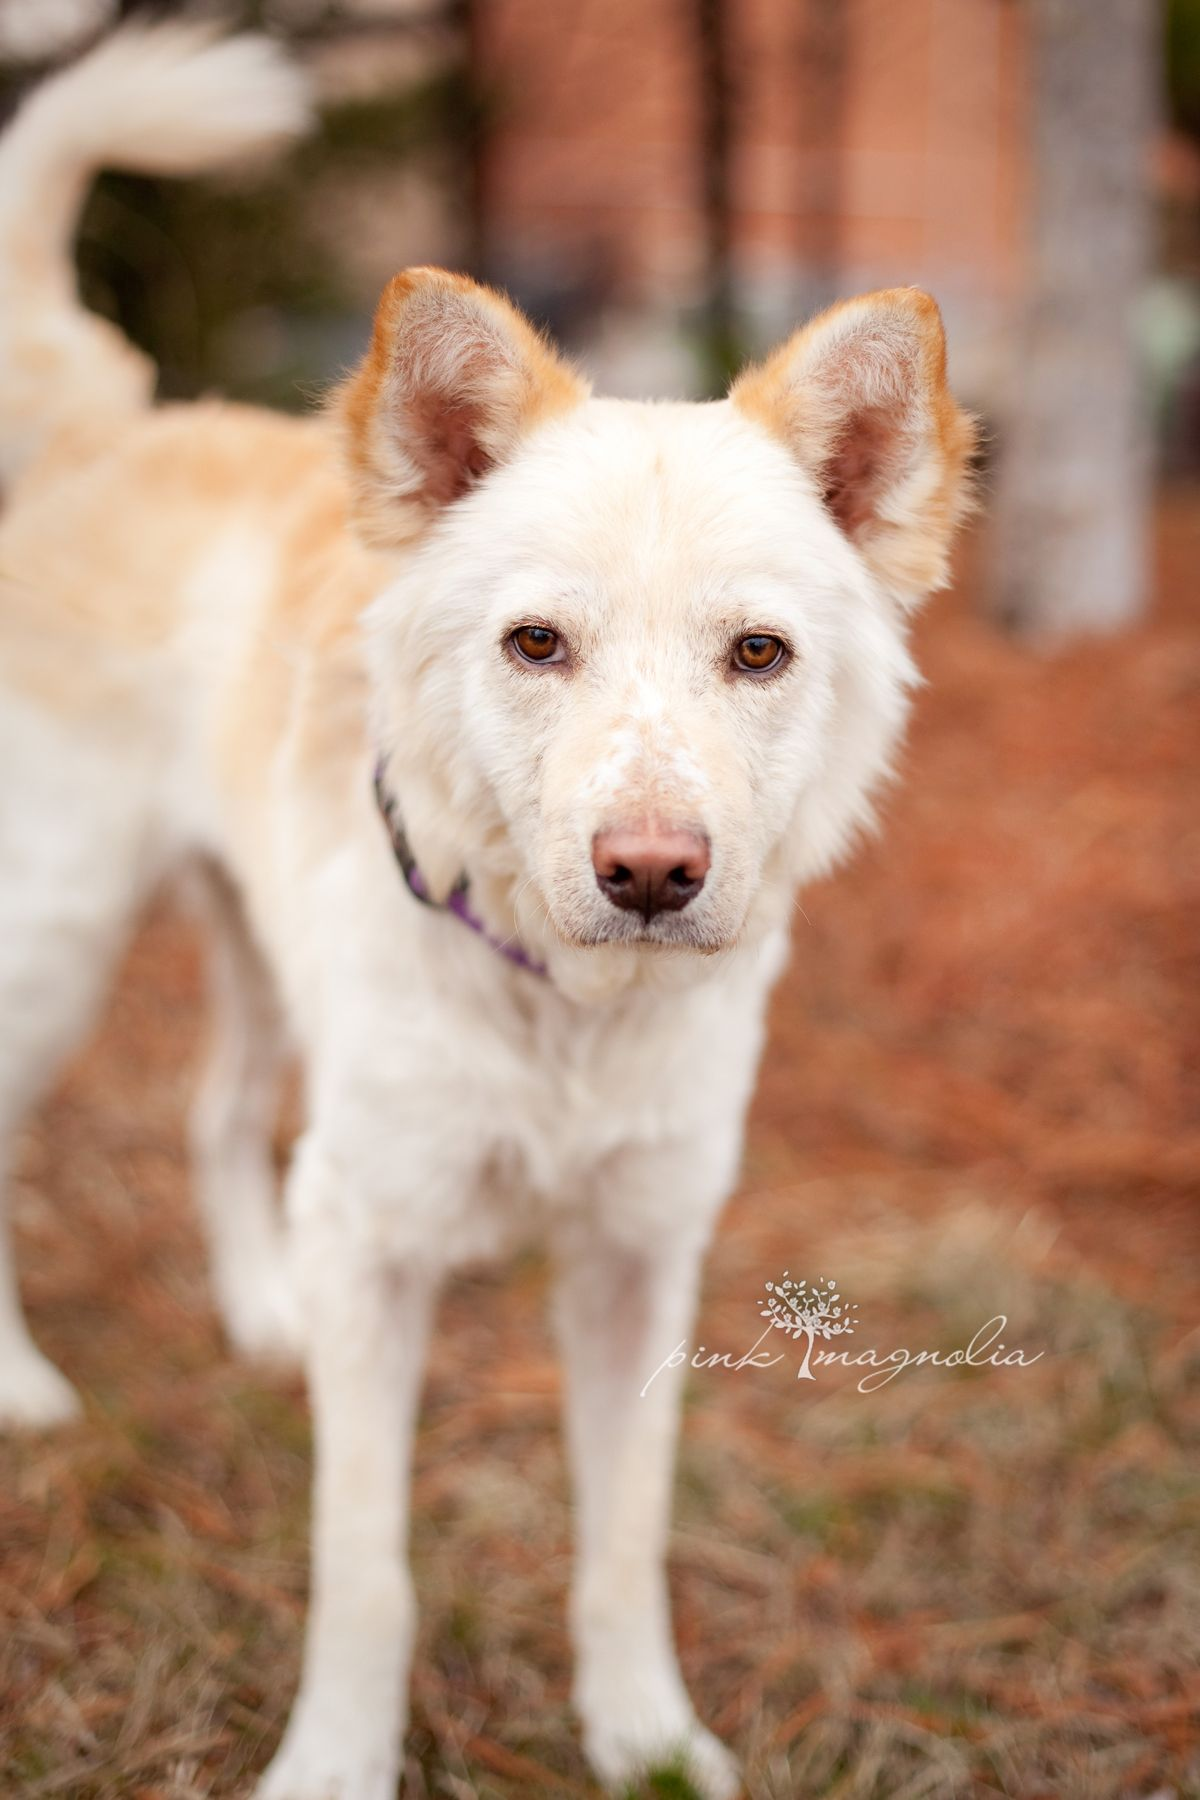 Riley is a goldenhusky mix available for adoption through